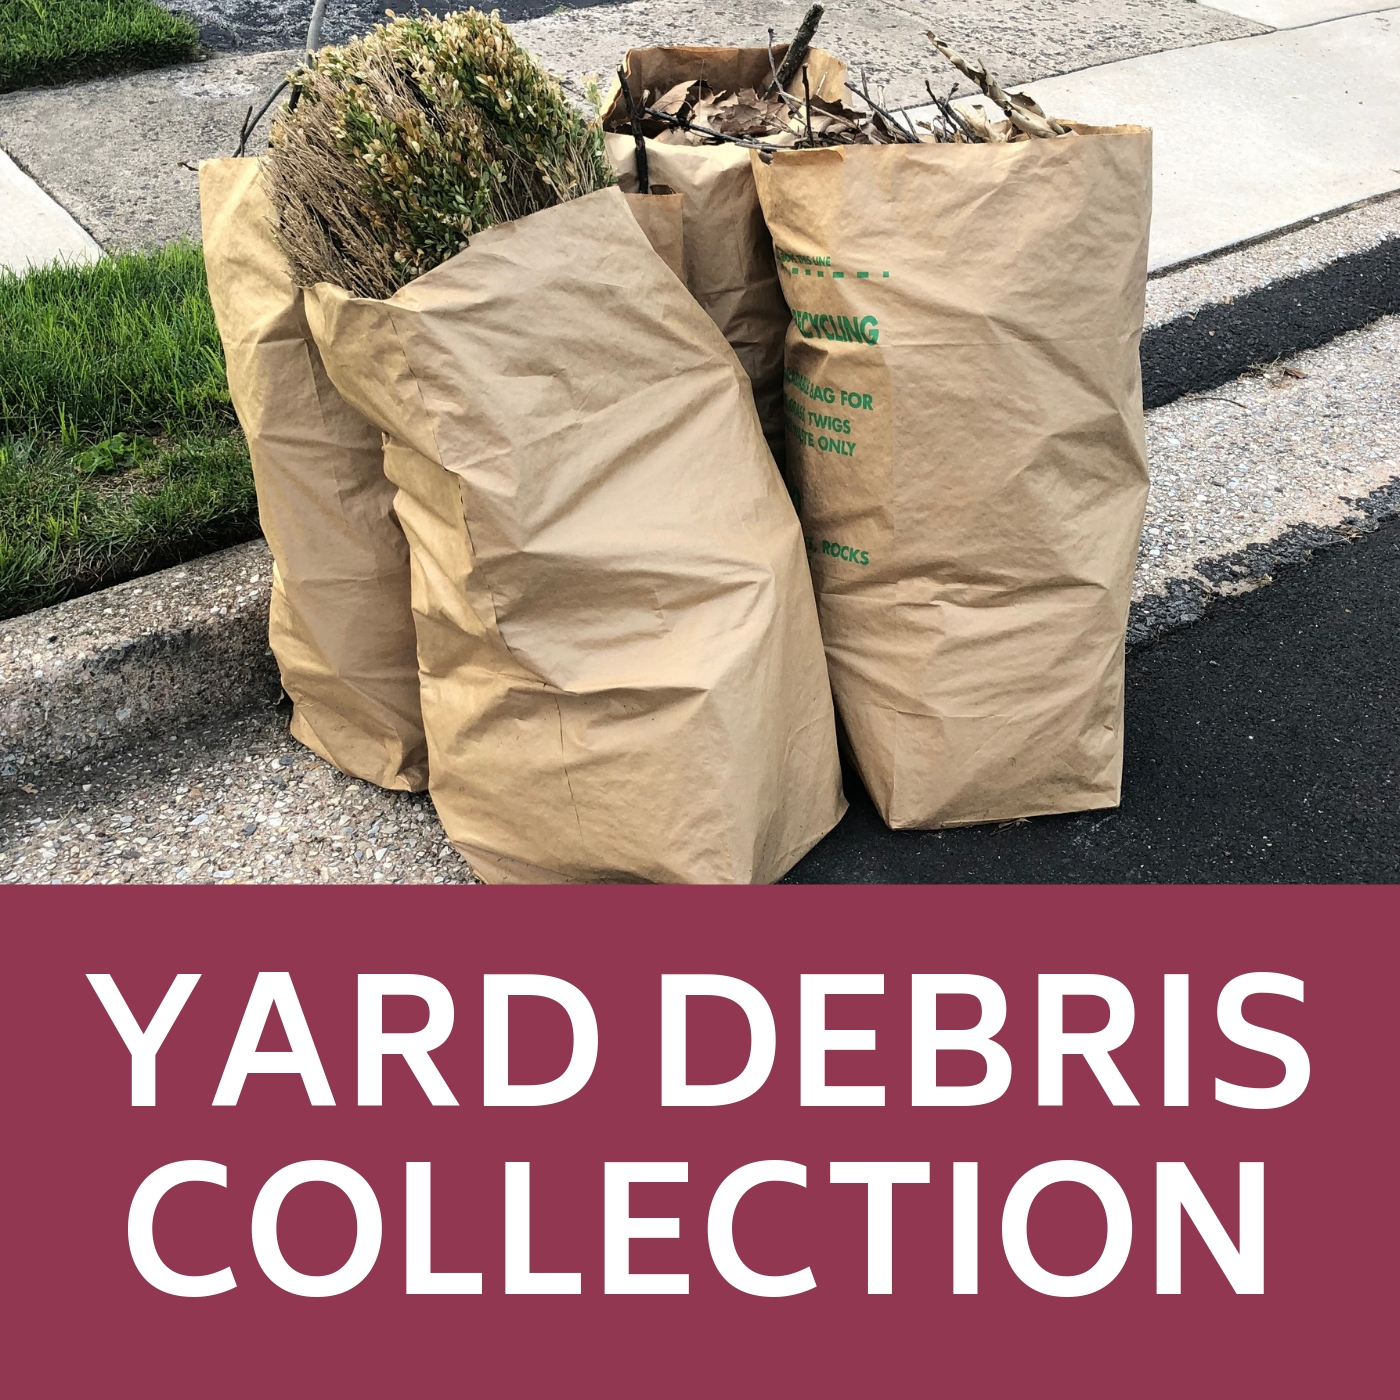 Yard Debris Collection Icon that links to webpage with yard debris information